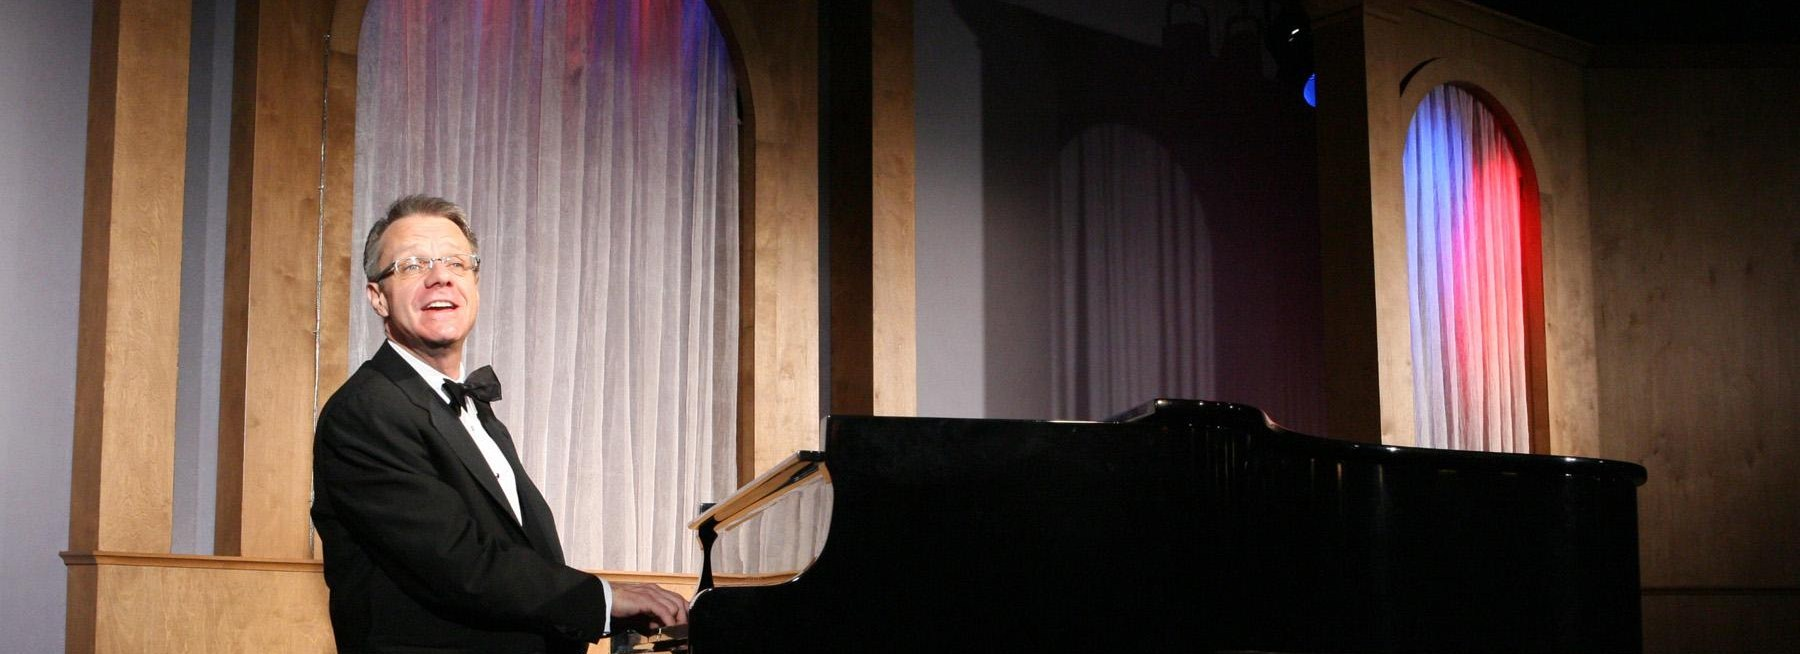 HERE TO STAY: Quality Hill Playhouse offers generous array of Gershwin's amazing talents